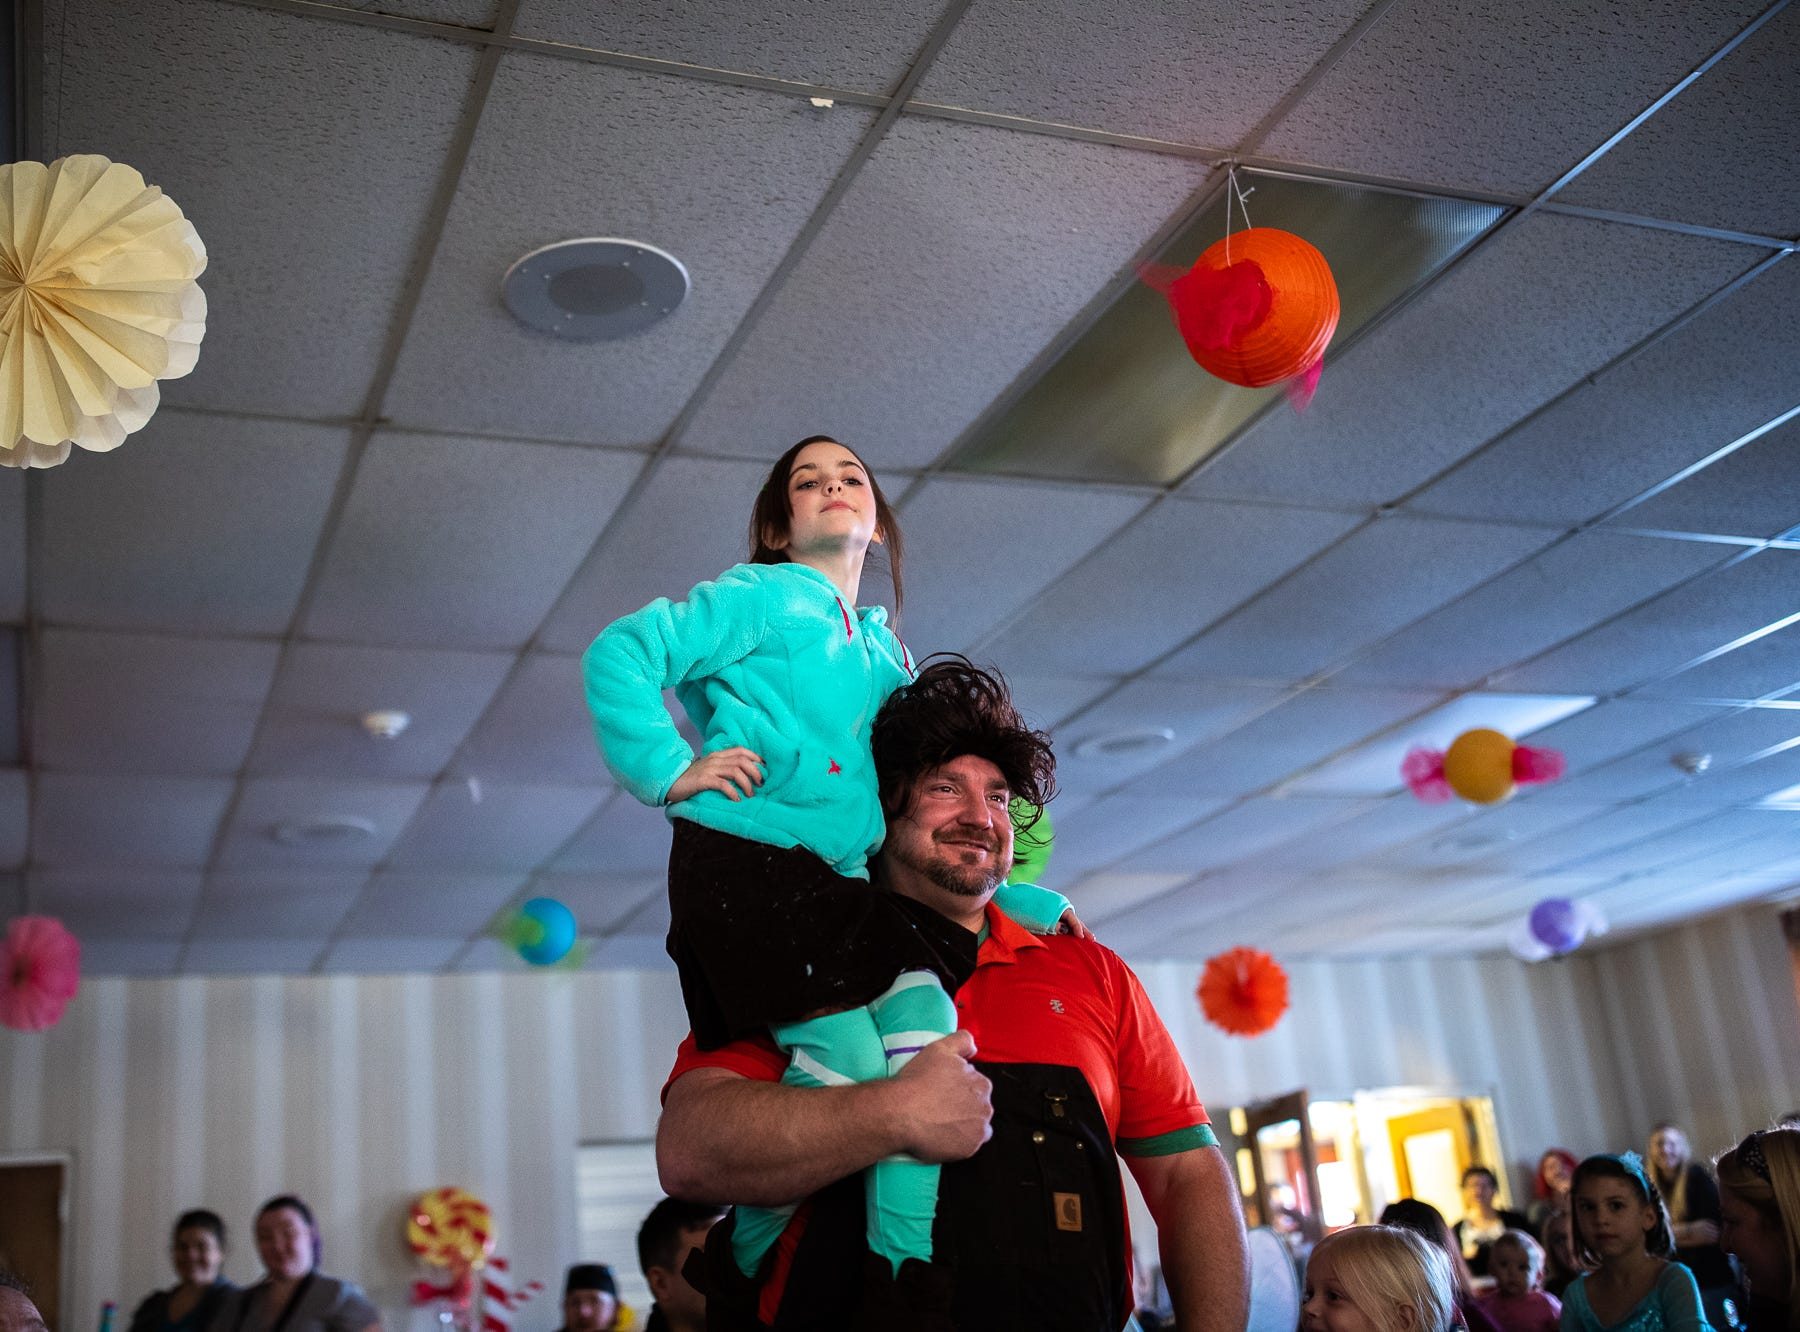 Wreck-It Ralph and Vanellope make their entrance during a princess teatime hosted by the Black Rose Rollers, Saturday, Feb. 9, 2019, at the Hanover YWCA.